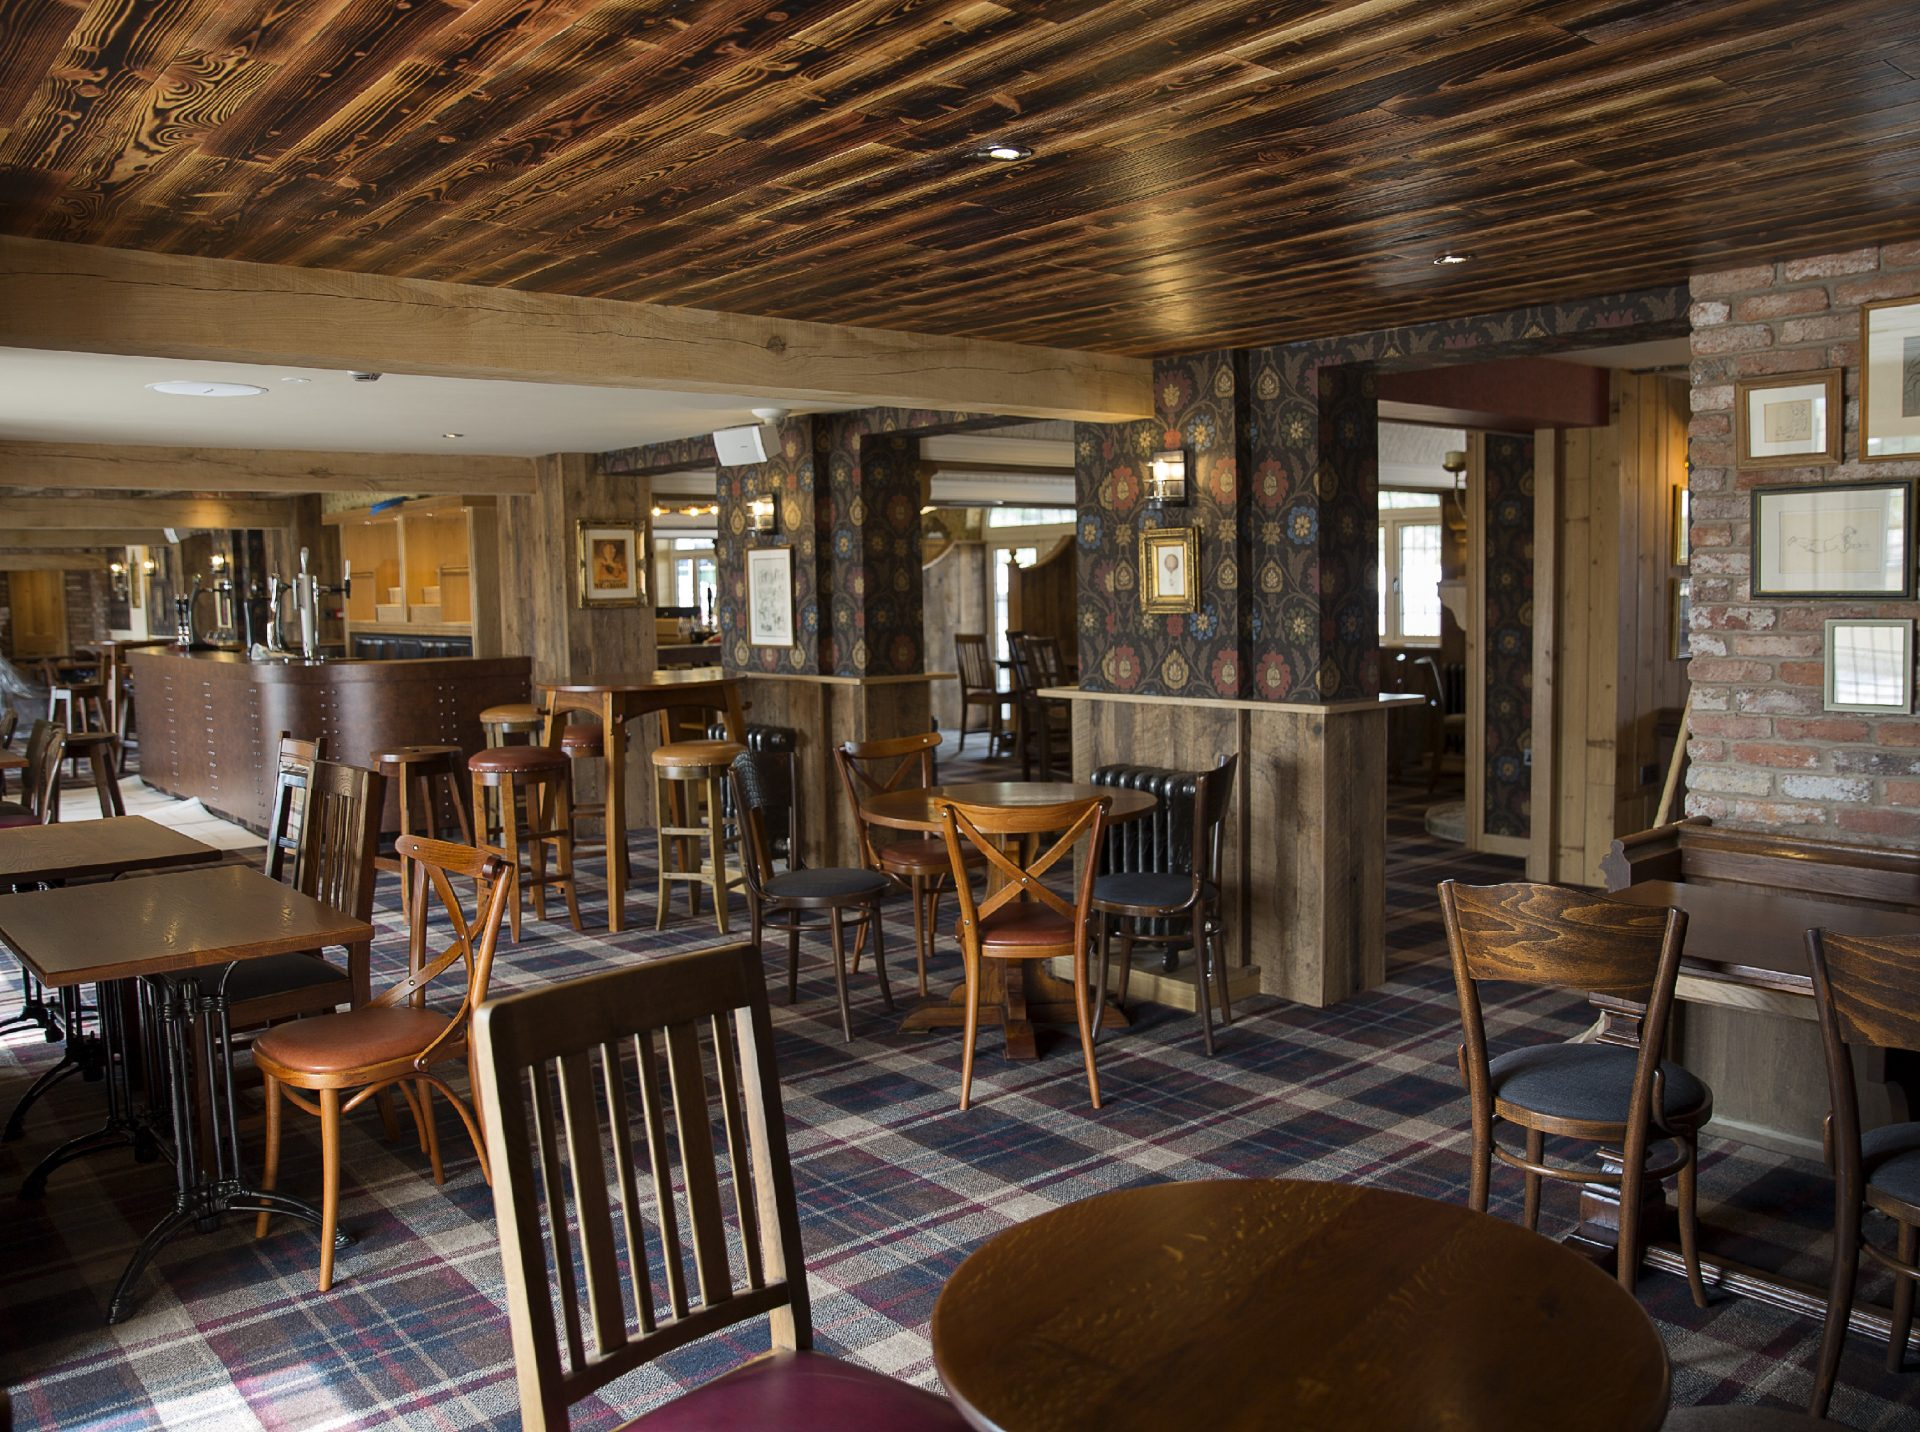 Millstone Hare Country Pub - with an old English pub feel